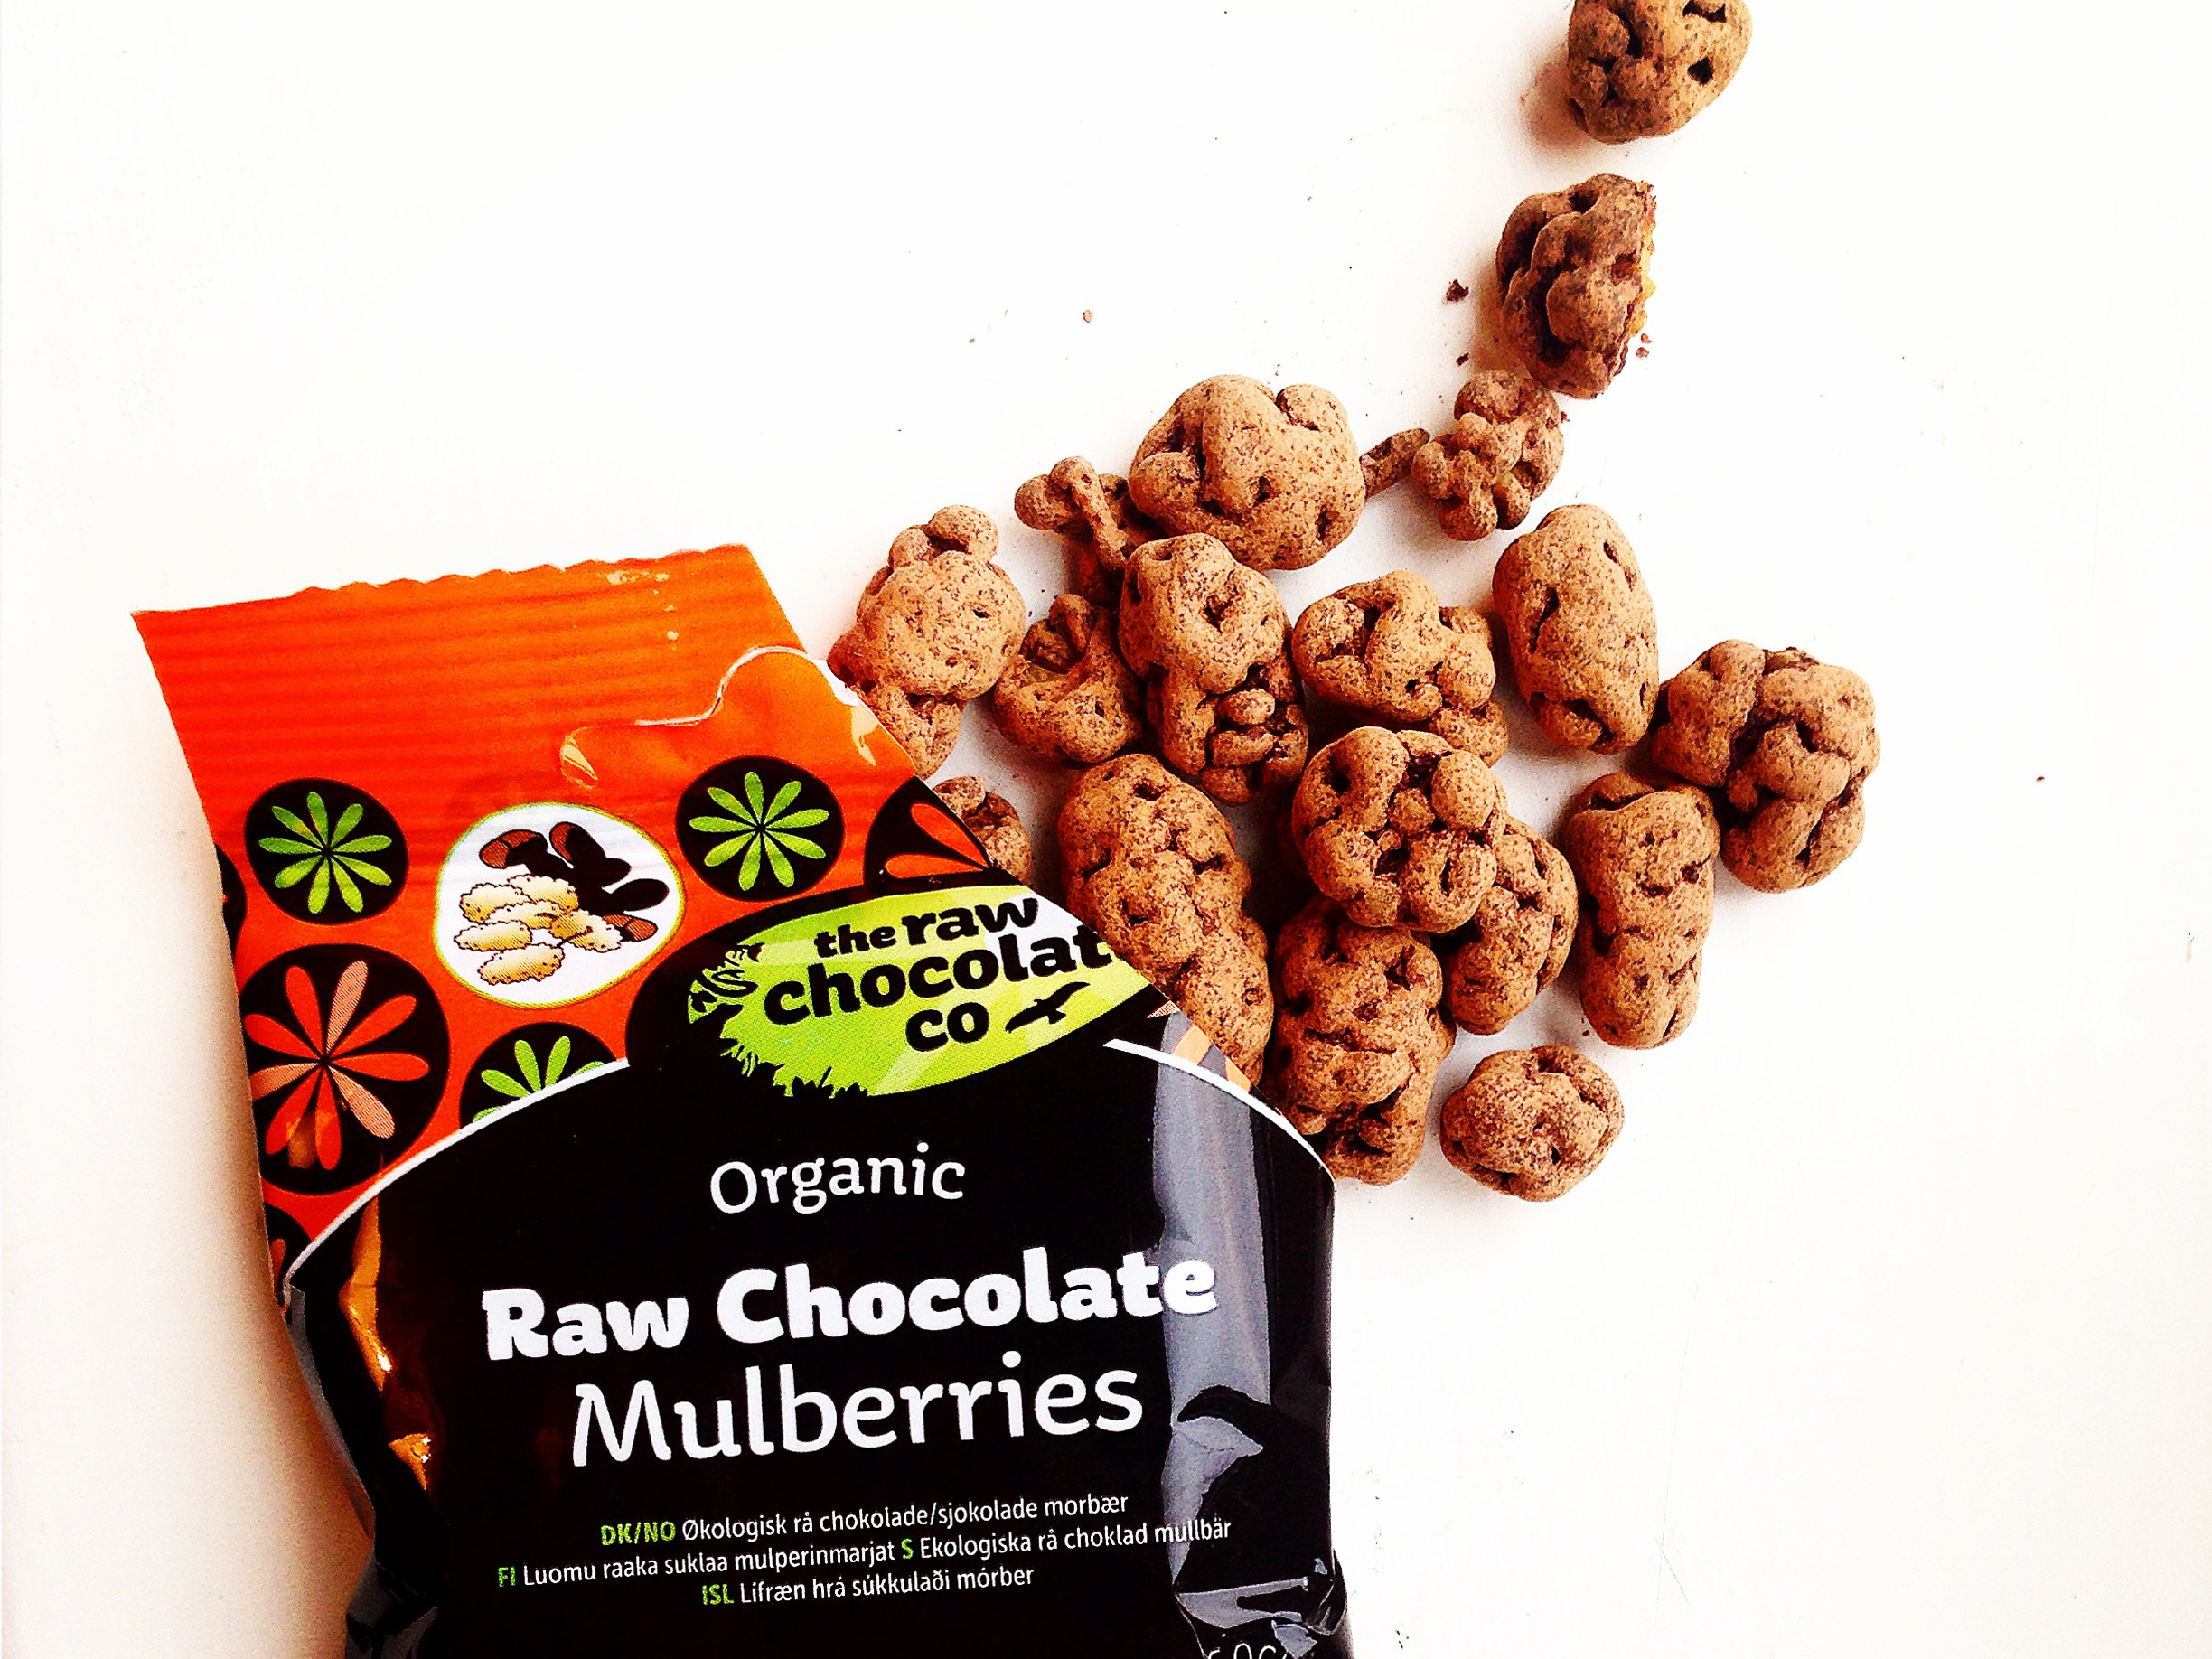 The-Raw-Chocolate-Company-Berries-Review-GOTSA